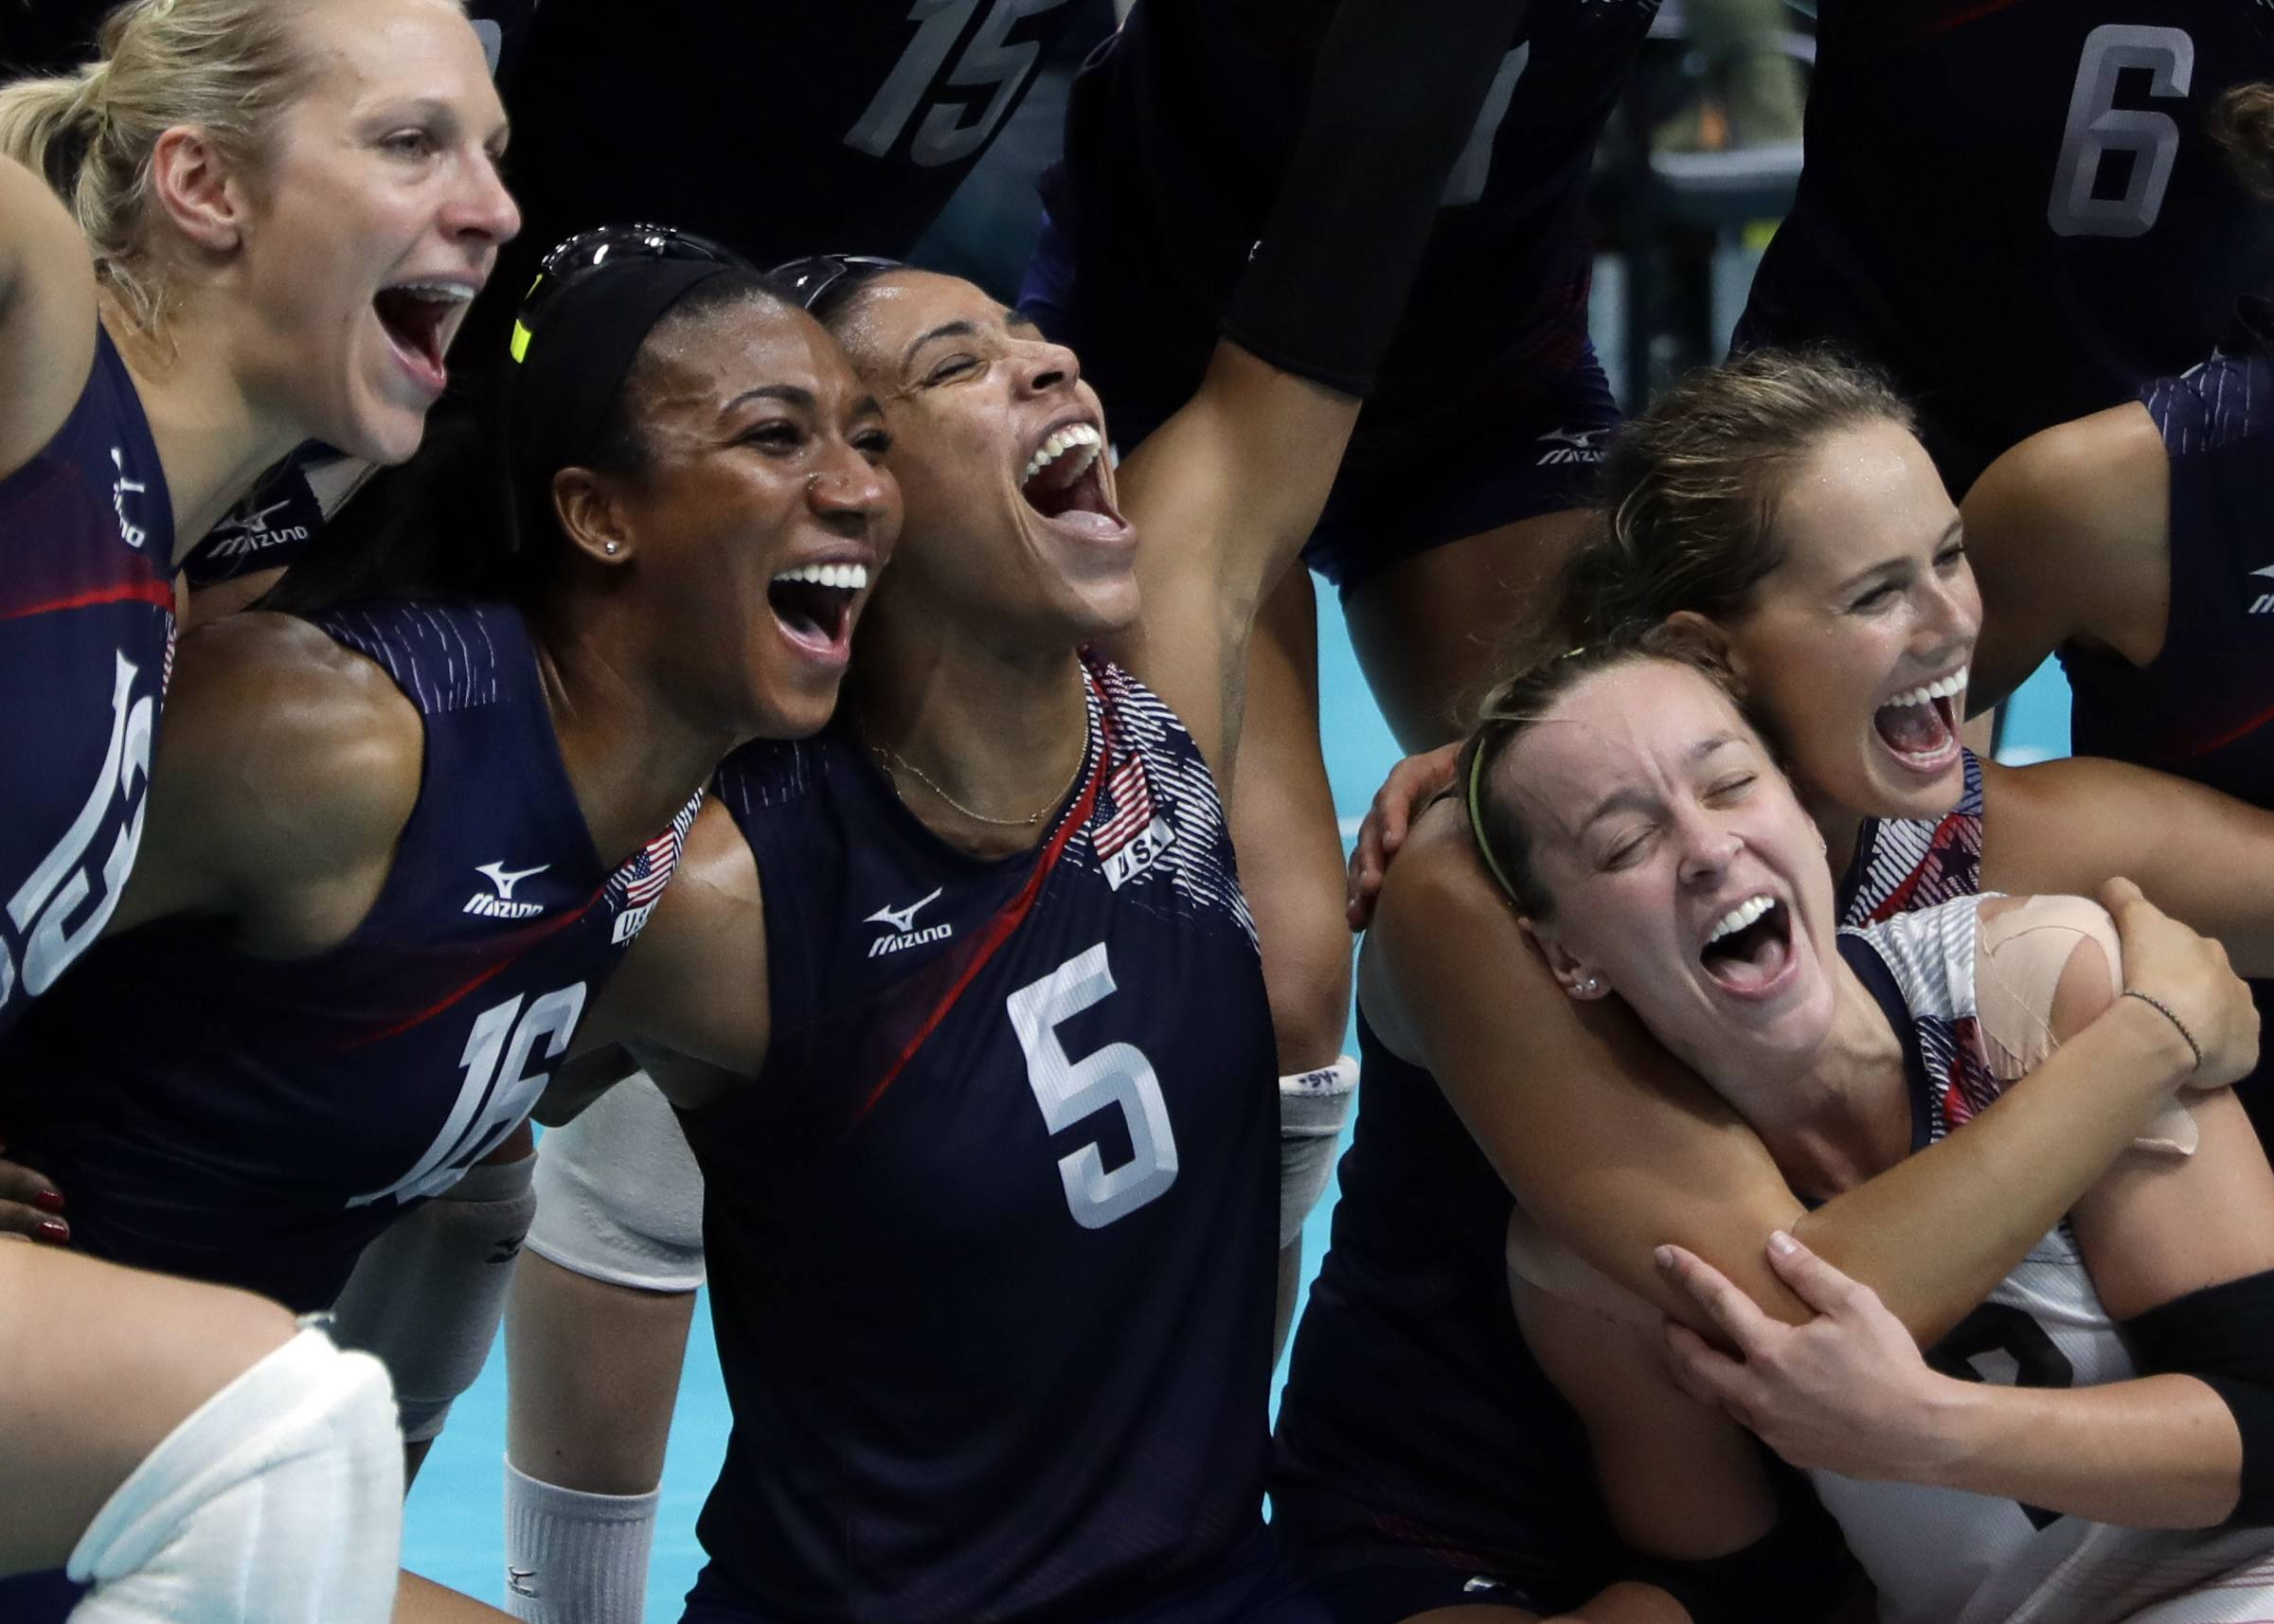 Members of the United States team celebrate after defeating the Netherlands during a women's bronze medal volleyball match at the 2016 Summer Olympics in Rio de Janeiro, Brazil, Saturday, Aug. 20, 2016. The United States won 3-1.